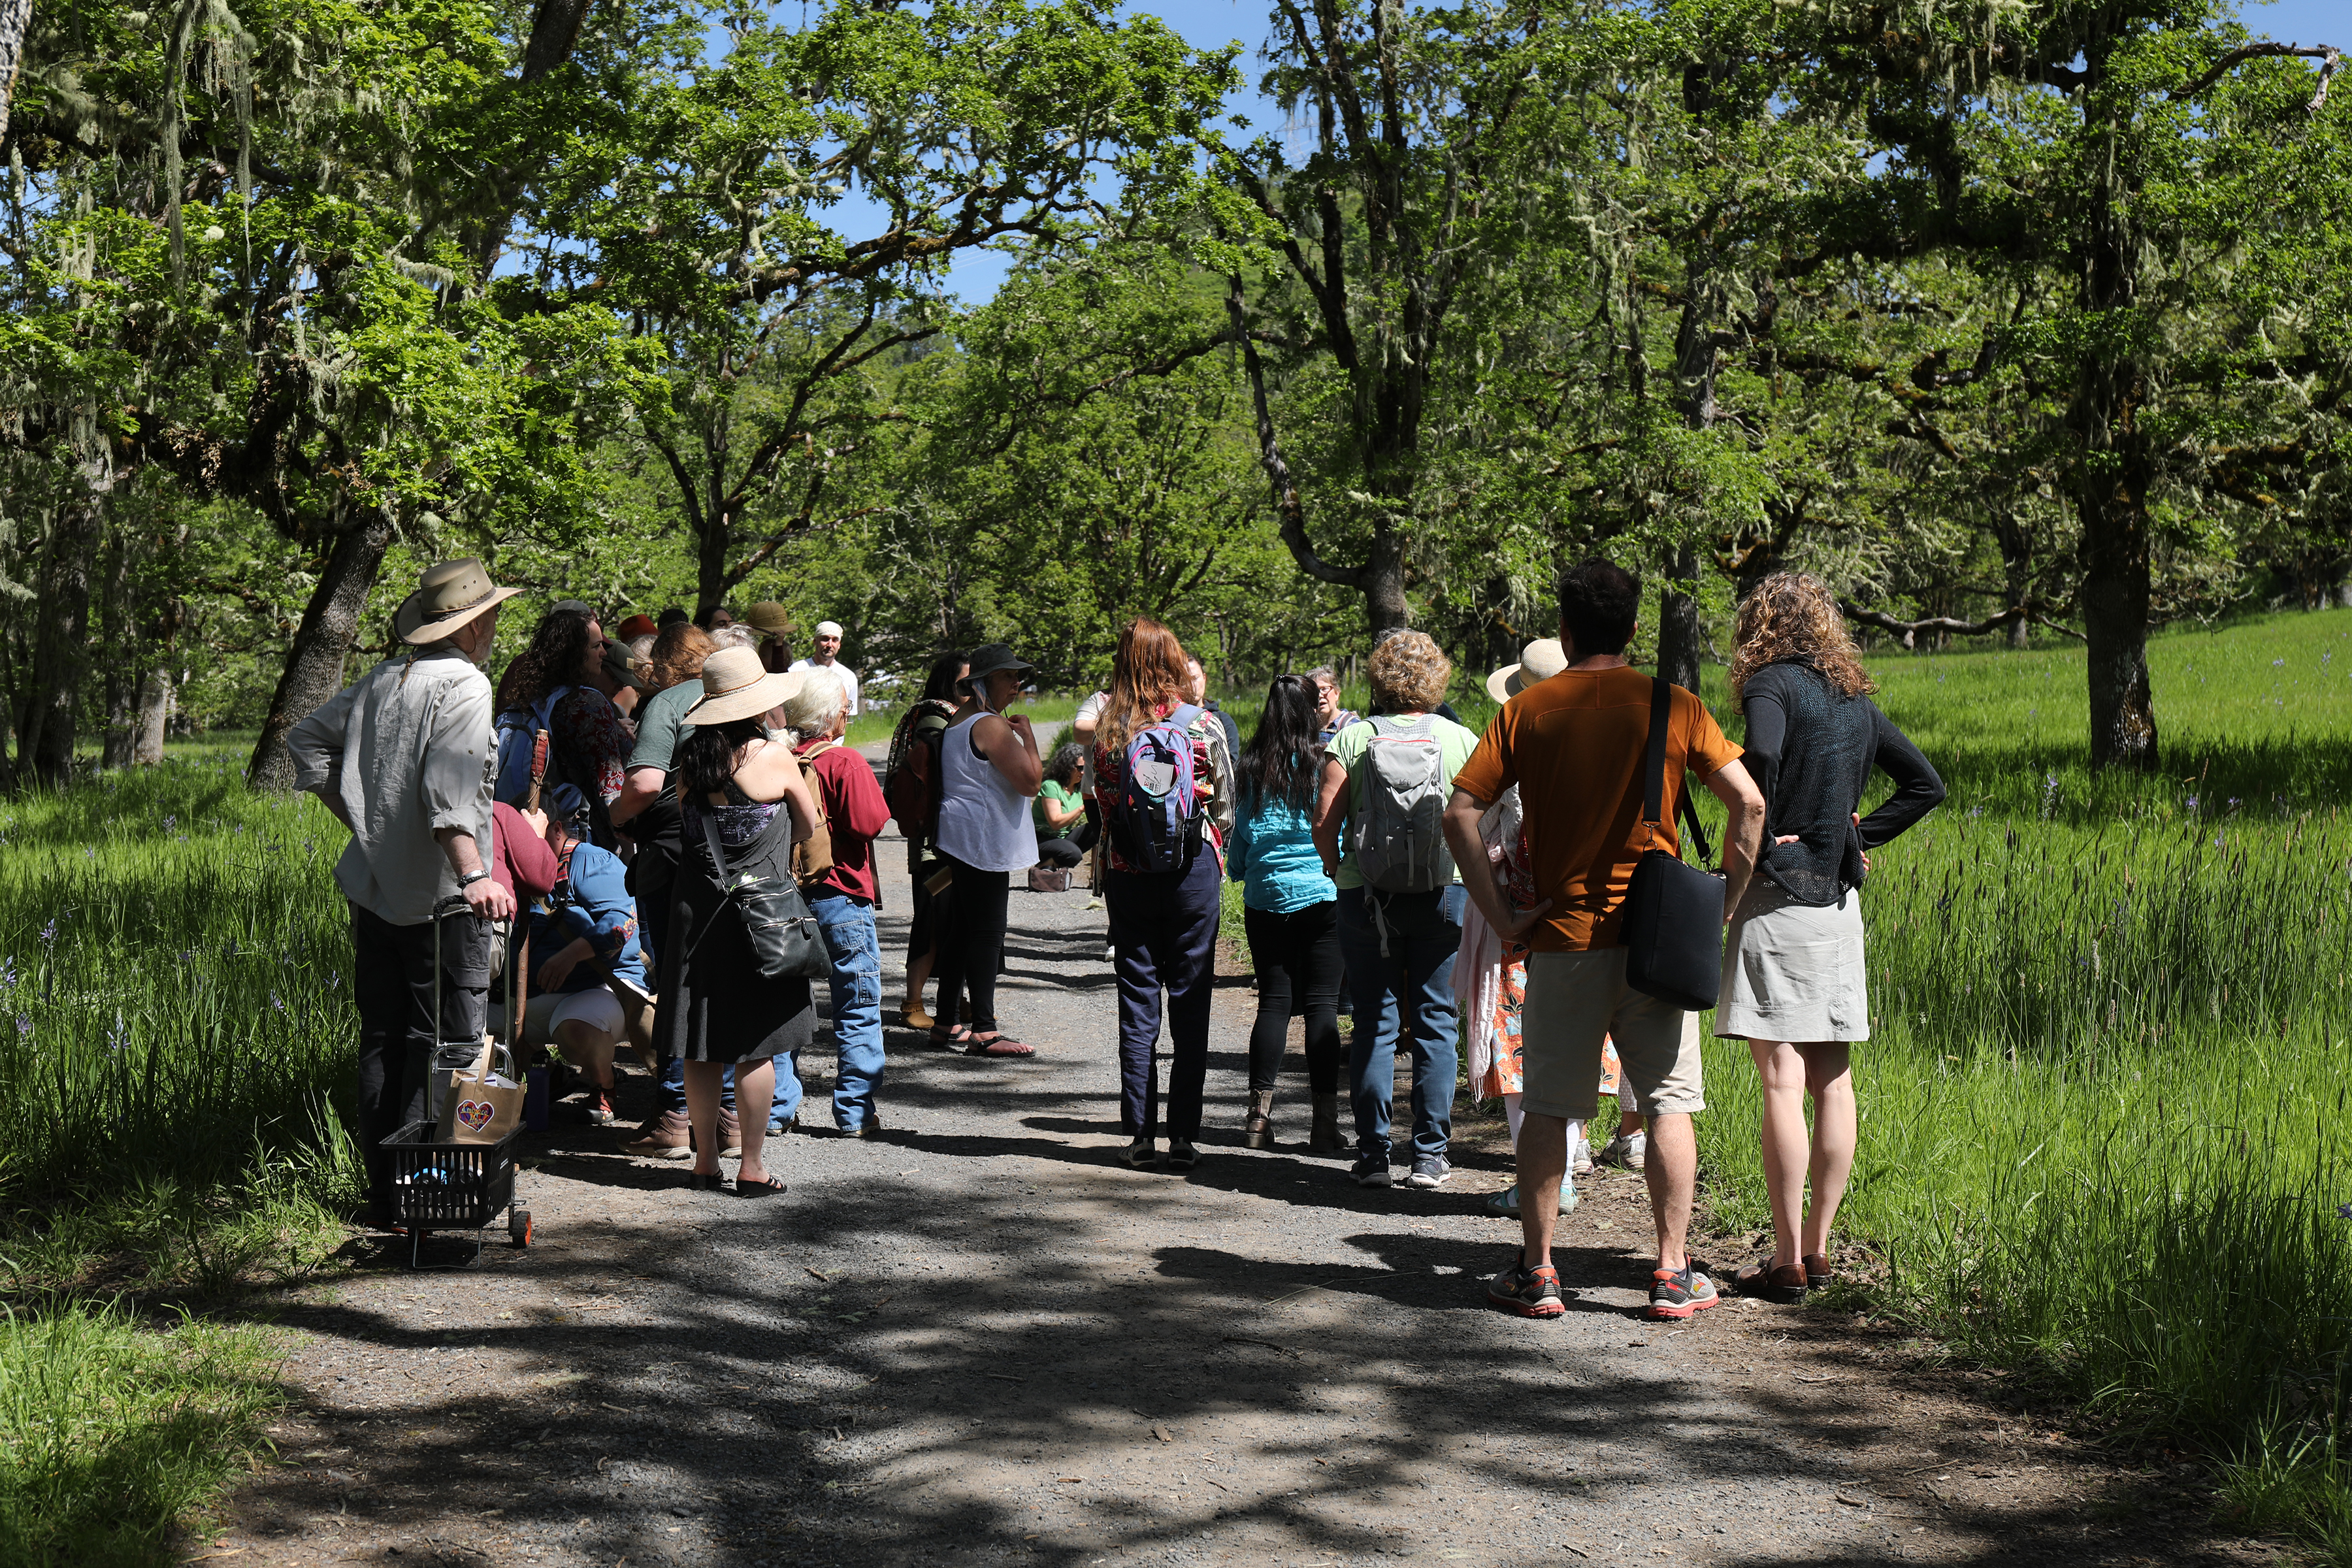 Educational plant walks are hosted by professional botanists to help people understand how to identify the beneficial herbs growing in the wild.